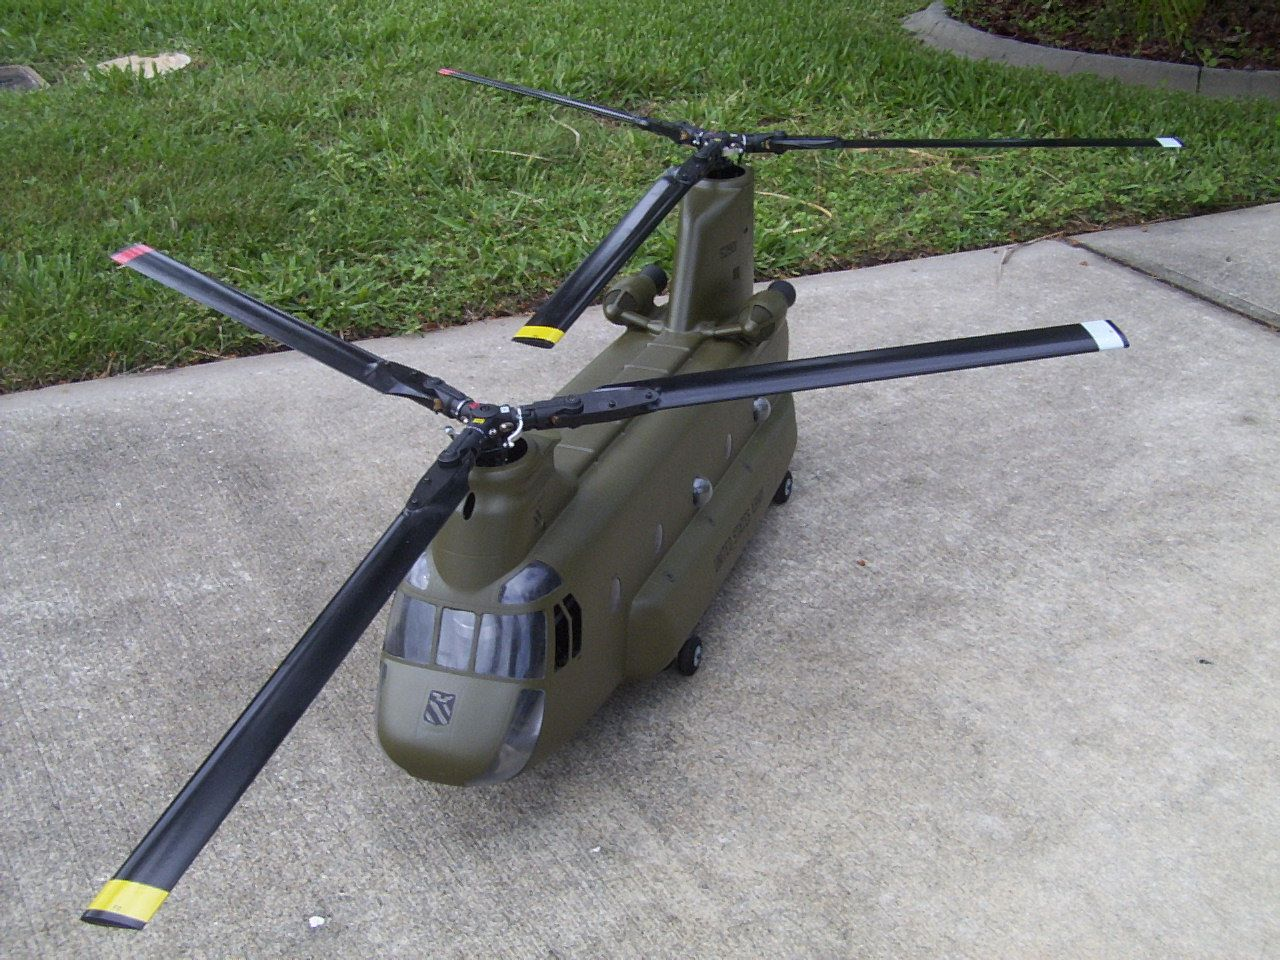 blackhawk helicopter model kits with Rc Helicopter Chinook on Uh 60a vG NRcJSz98EGVKxf9bU6TmwqpikRflyLvyzC ylf1k together with Custom Army Lego Model Sets besides O S Engines Dust Cover Rc Engine Part besides Rc Helicopter Chinook likewise Uh 60l Blackhawk.